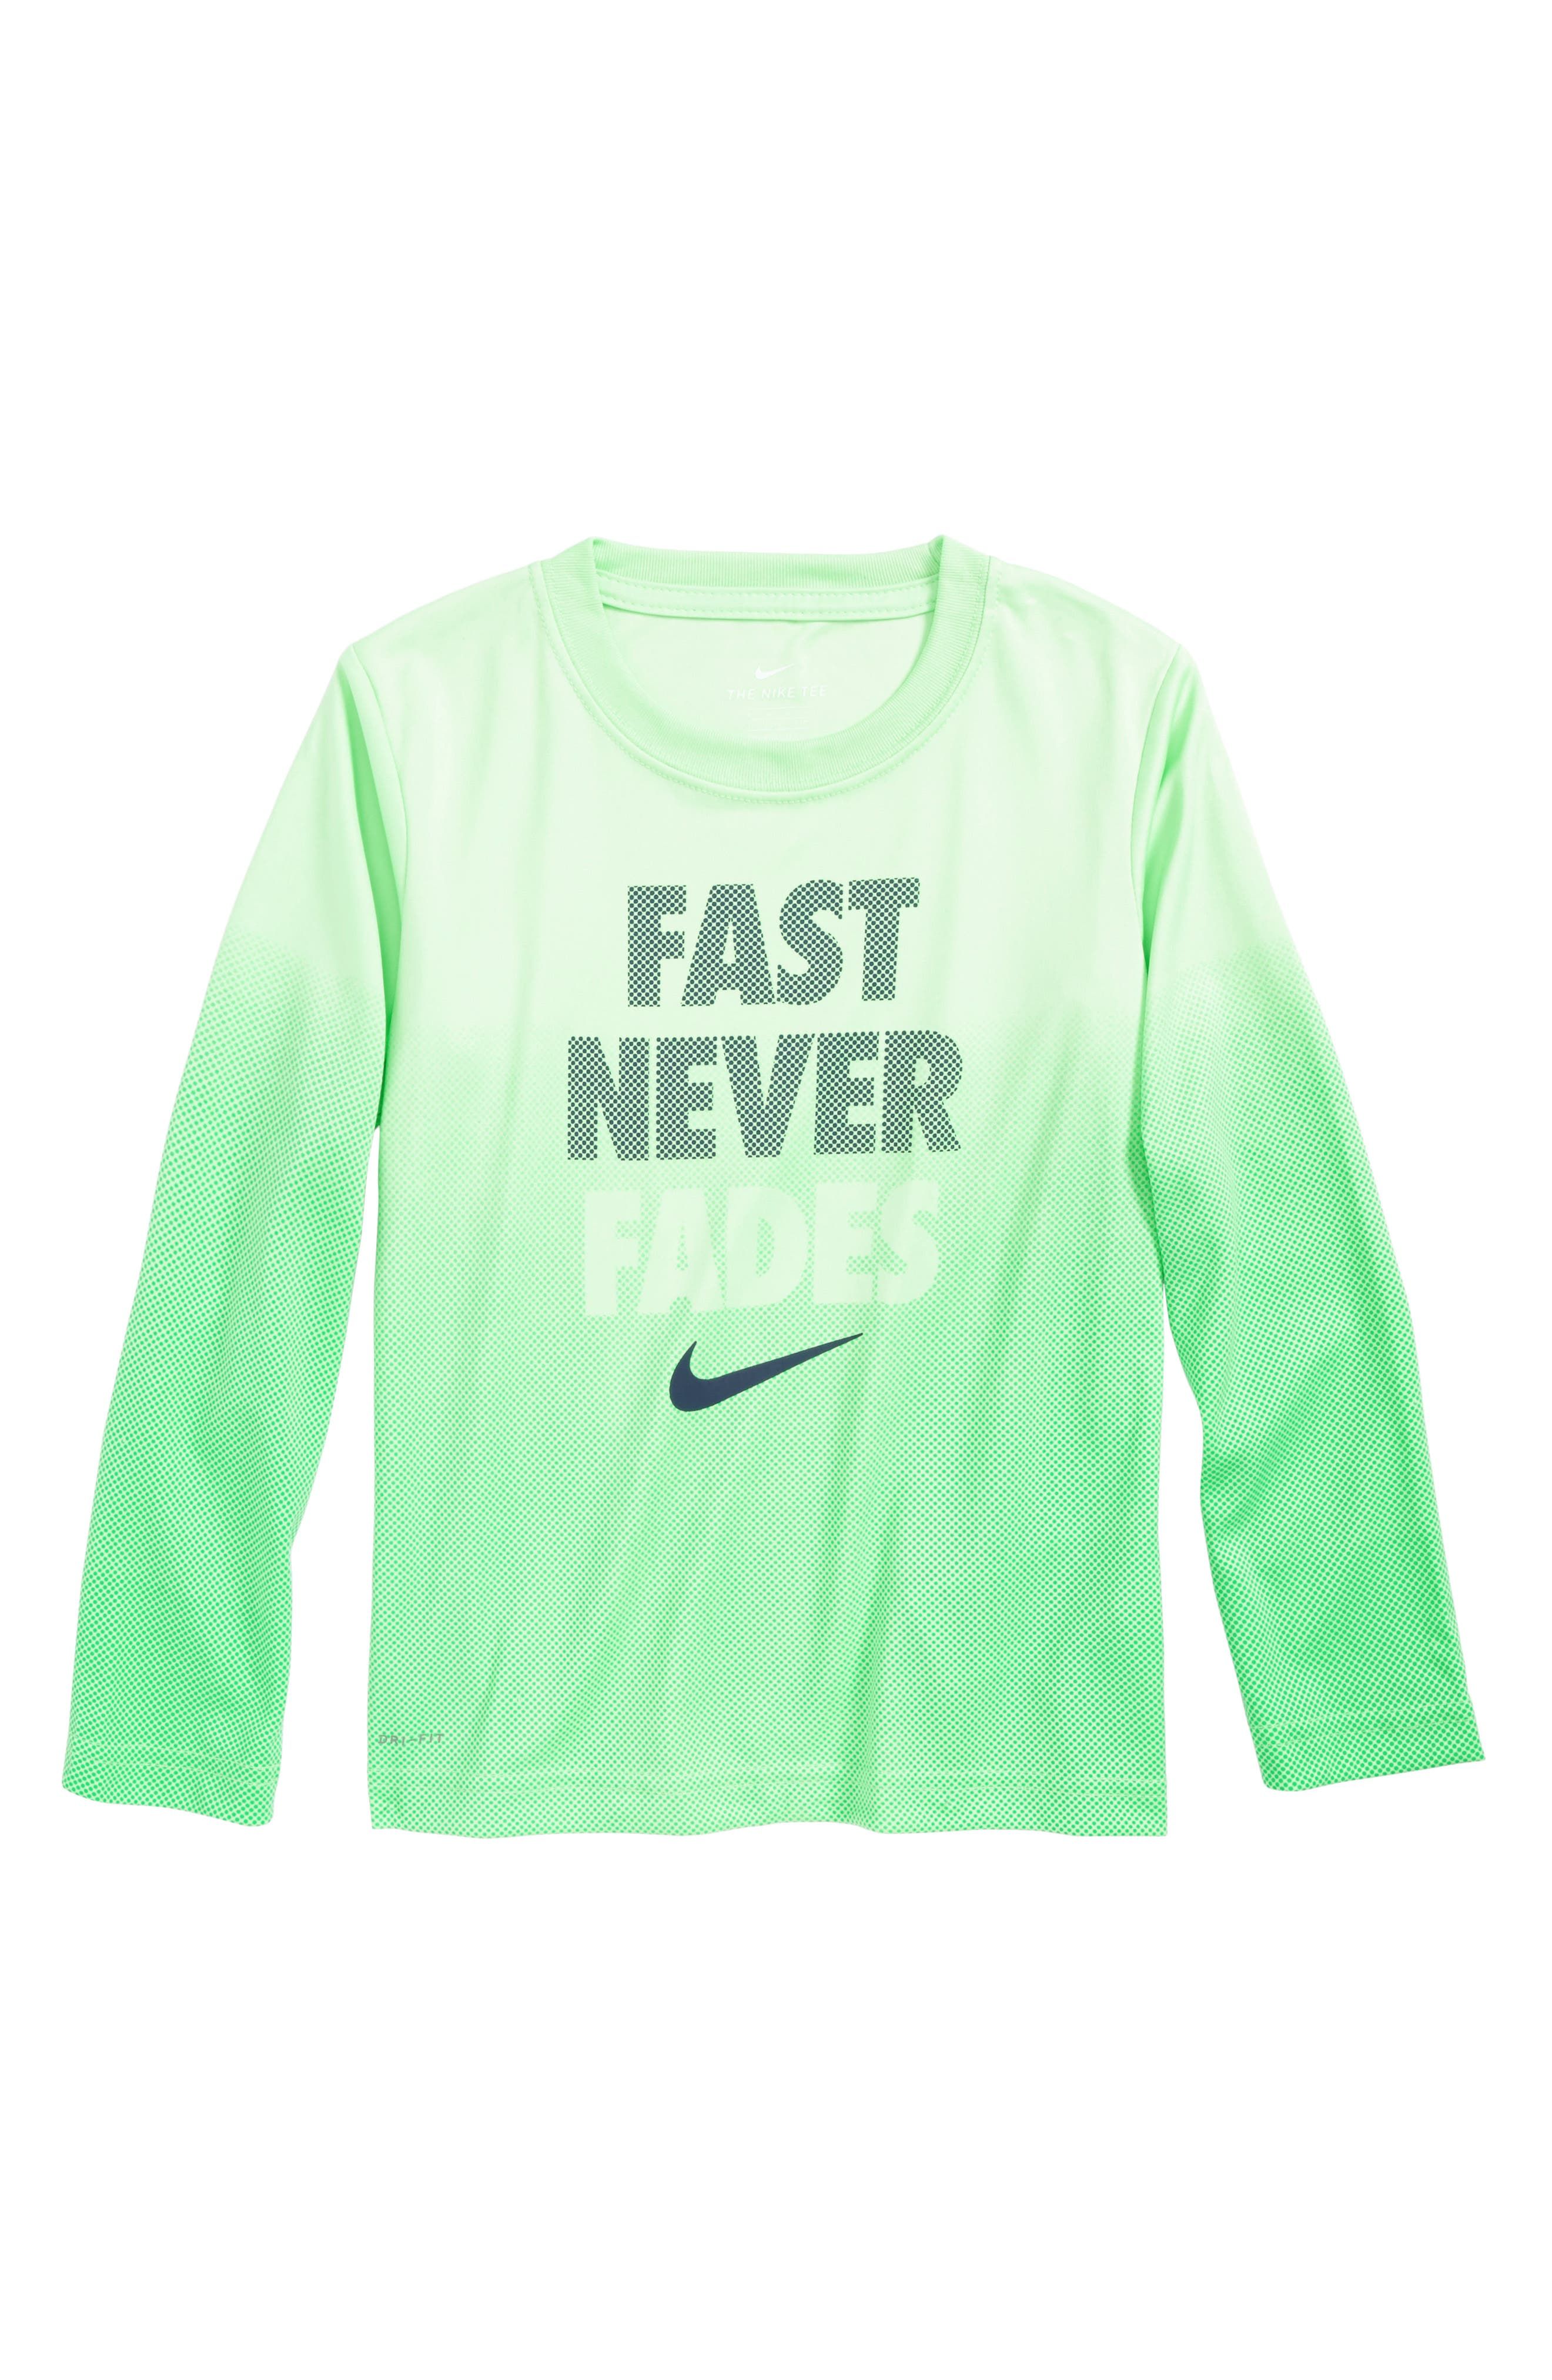 Fast Never Fades Long Sleeve T-Shirt,                         Main,                         color, Illusion Green